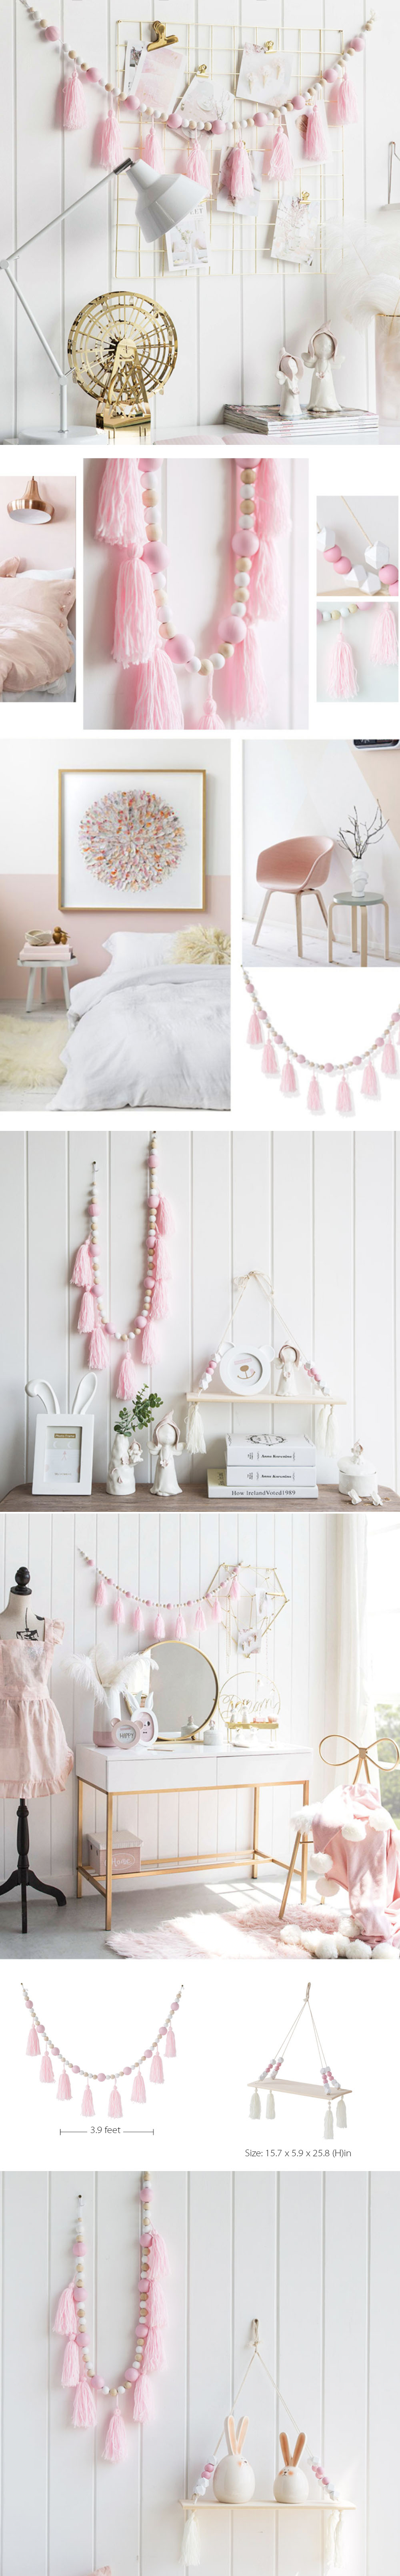 Wall Decor Pink Decor